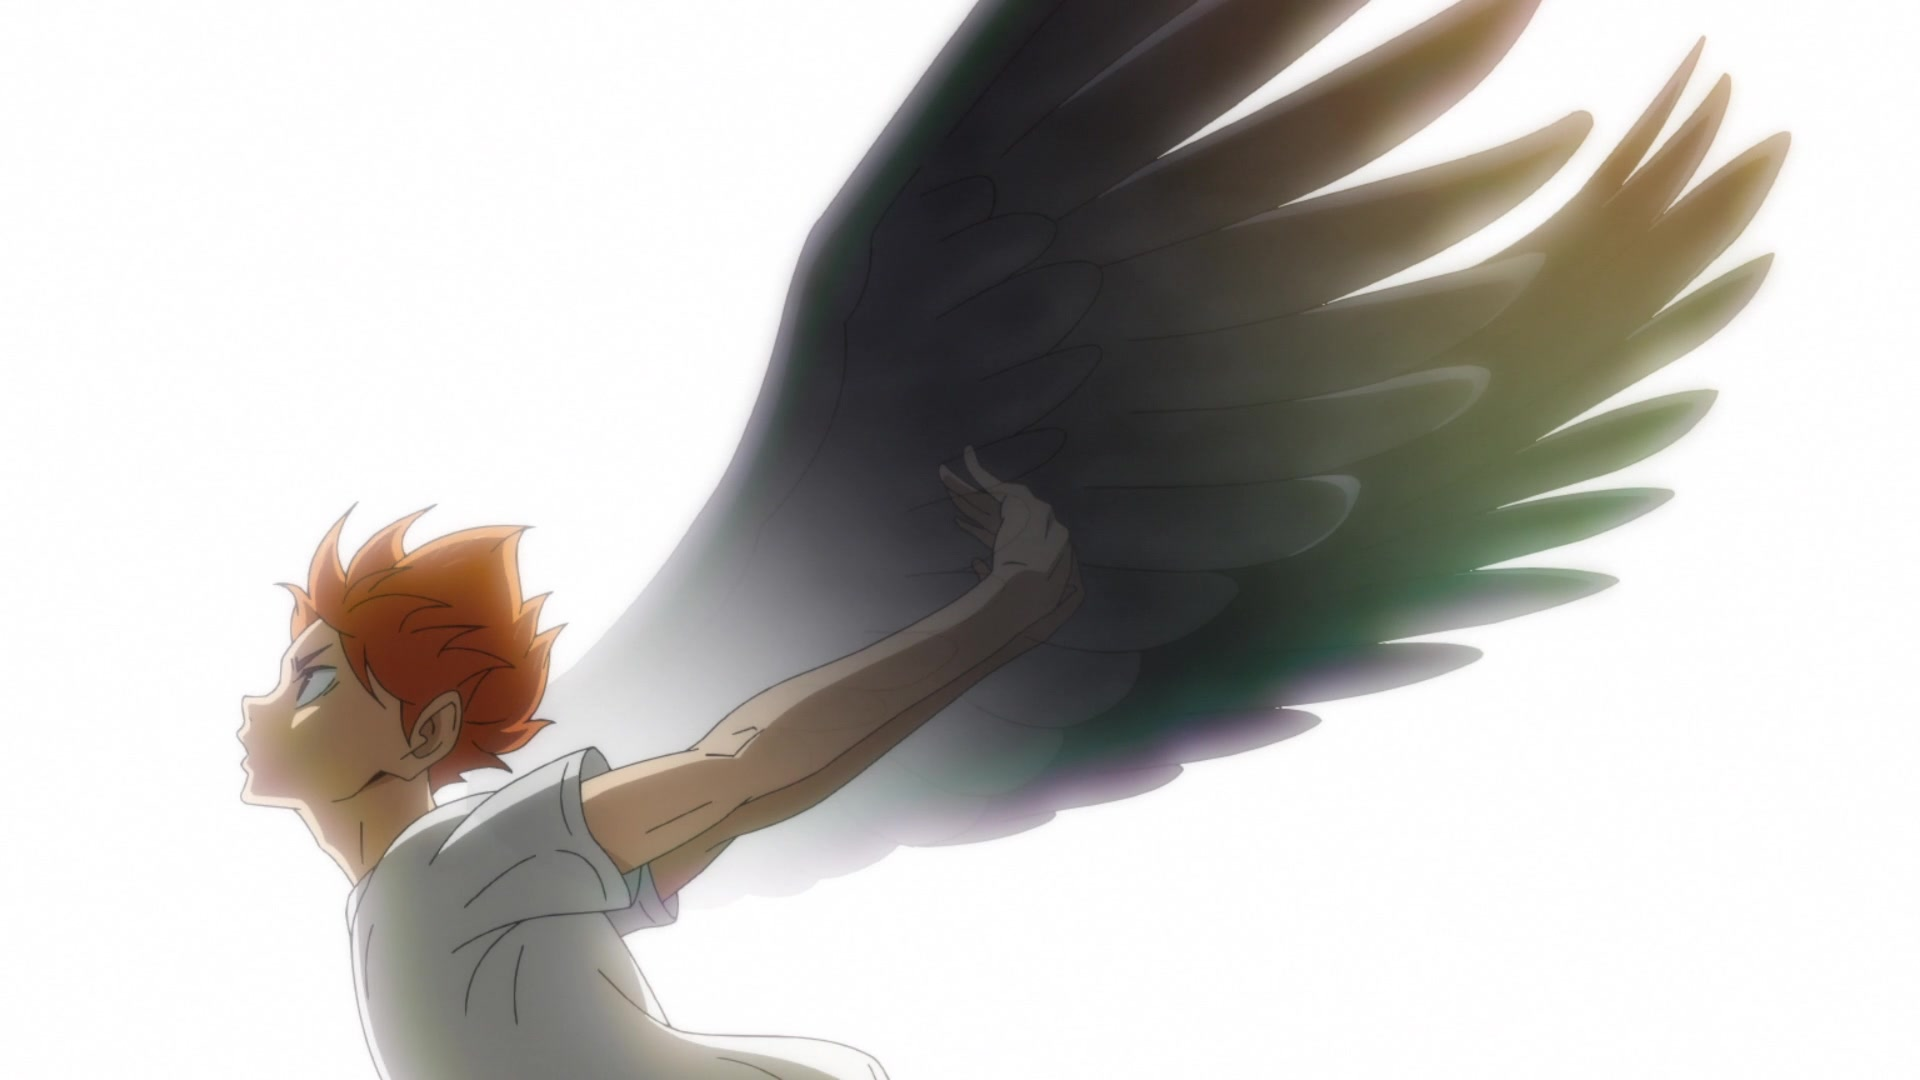 Hinata with wings from Haikyuu!! Season 4 anime episode 1